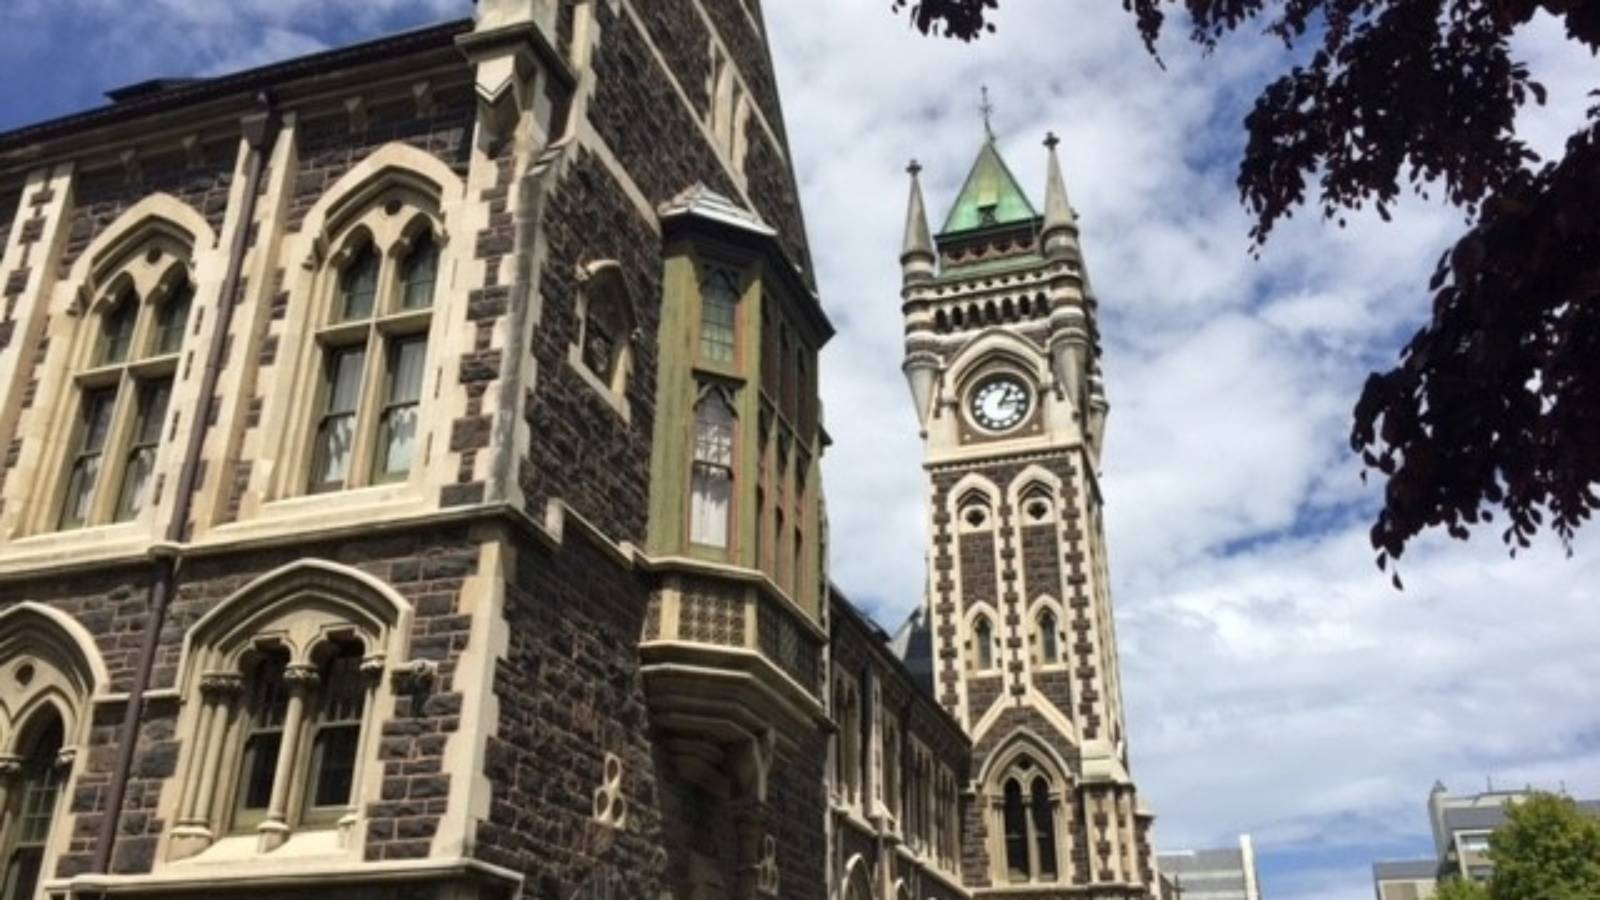 How to spend a day in Dunedin on a $50 budget